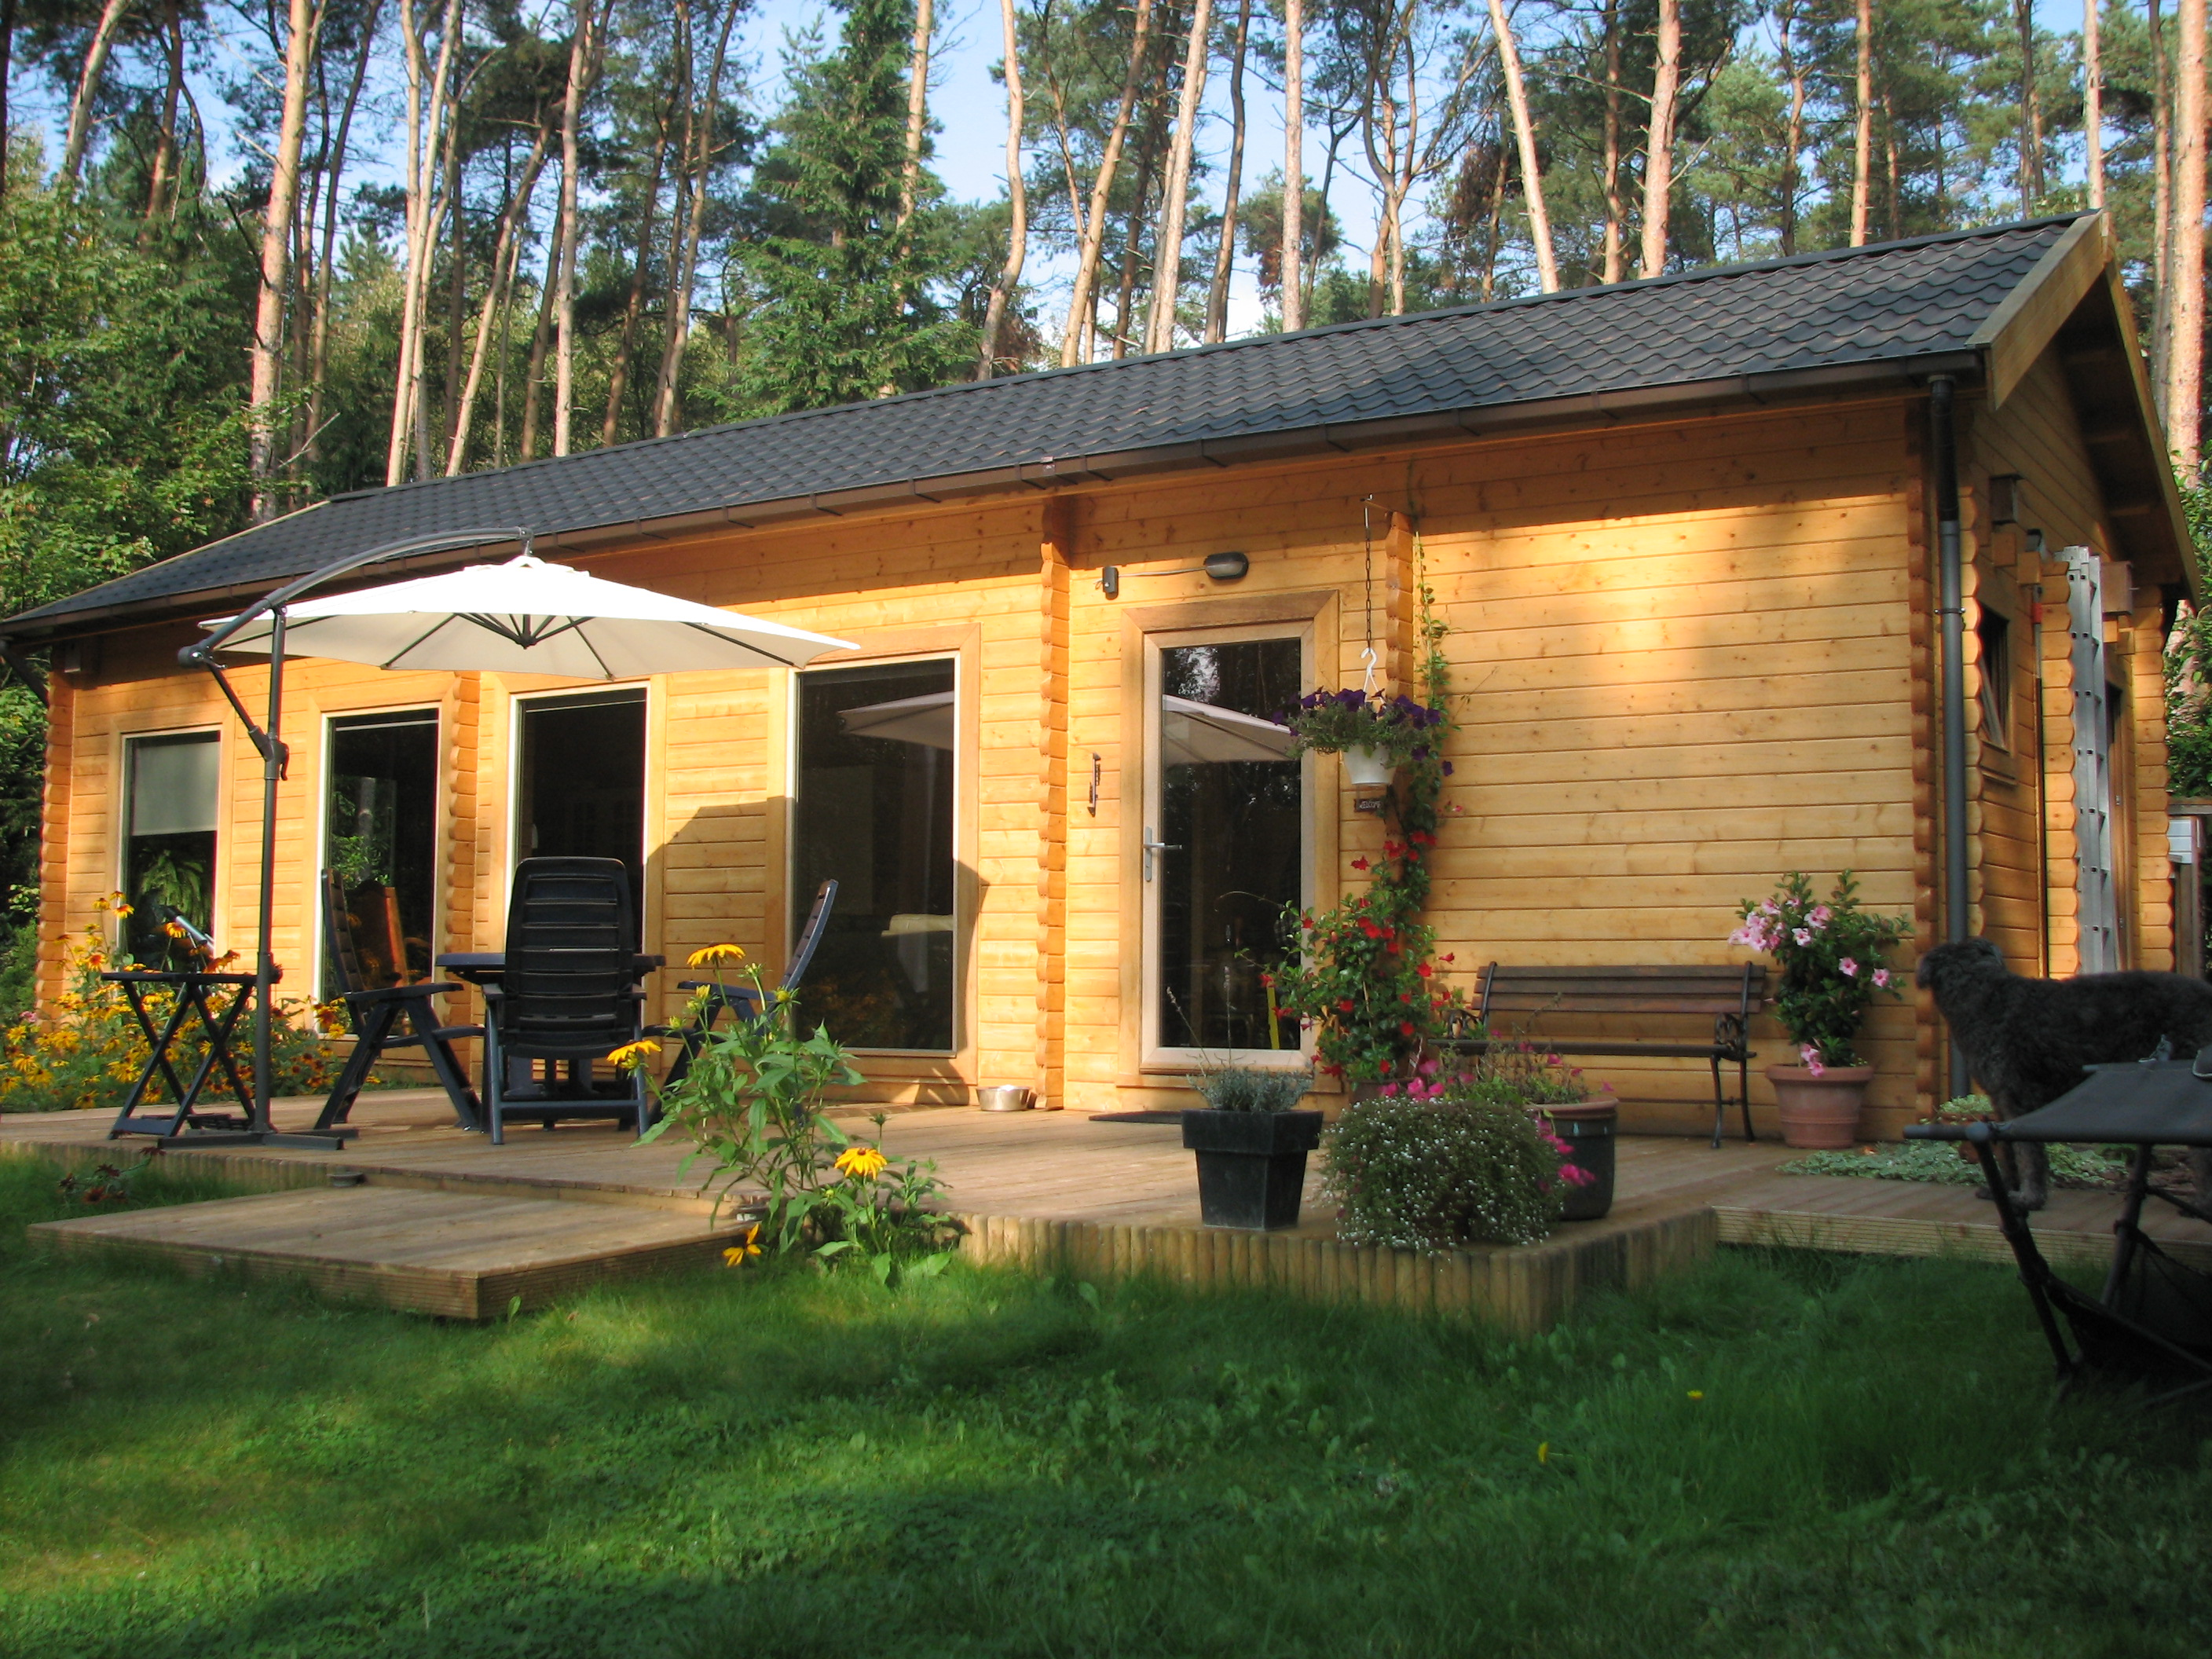 Bien isoler son chalet de jardin blog chalet center for Chalet de jardin bretagne